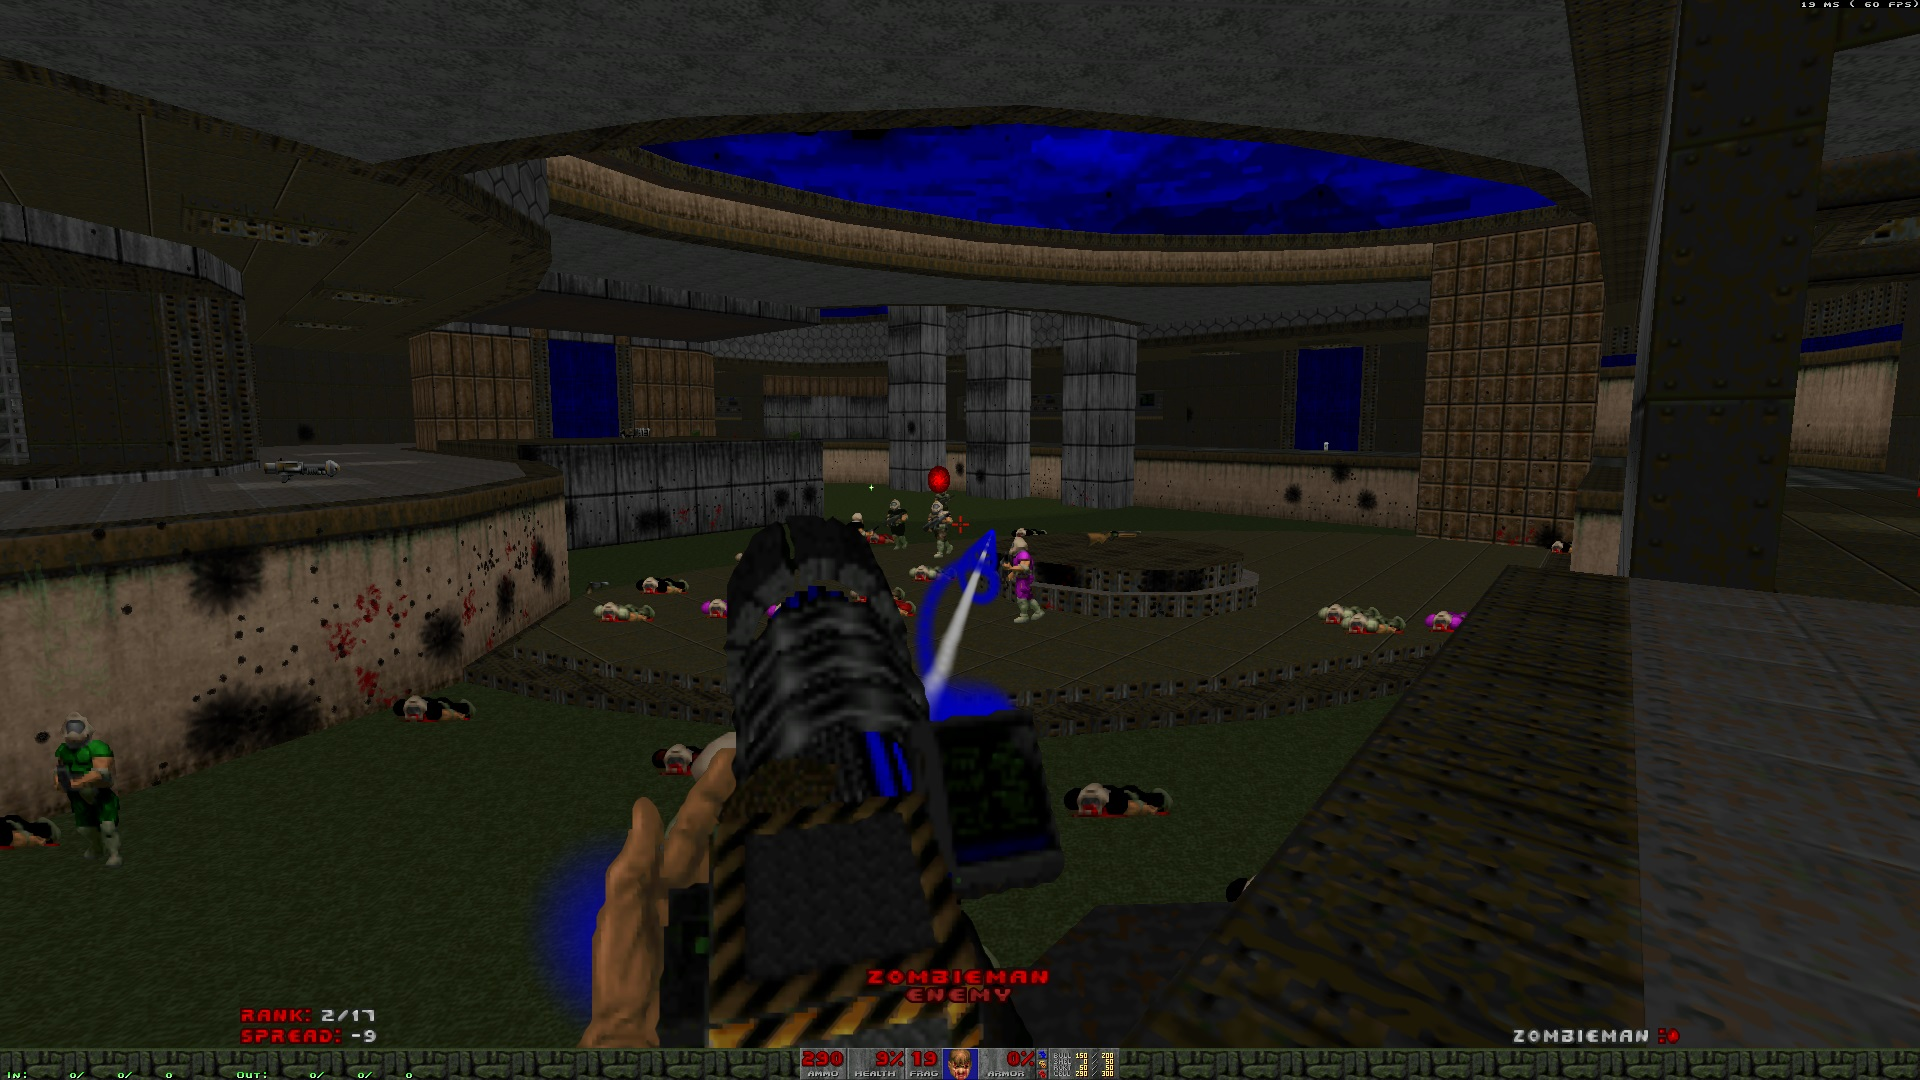 How to install doom mods | Steam Community :: Guide :: The Ultimate